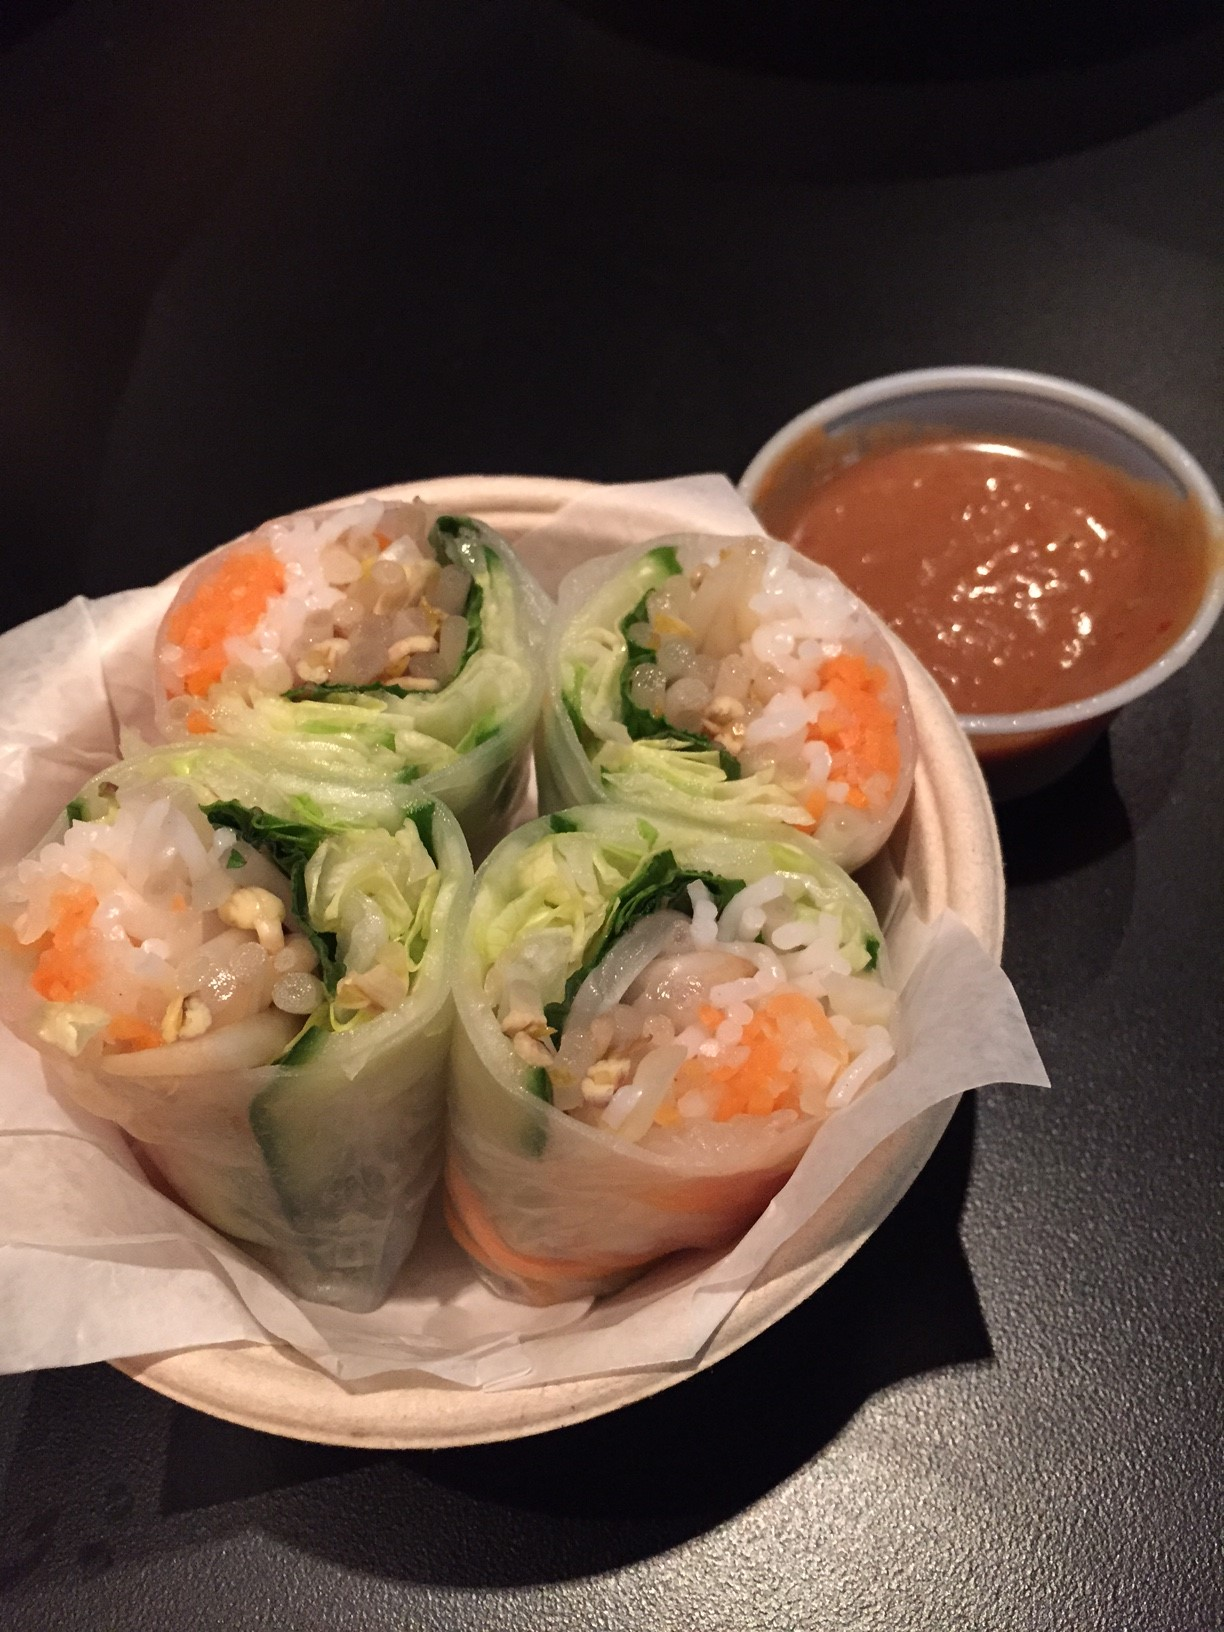 spring rolls at Banh Shop via dallasfoodnerd.com